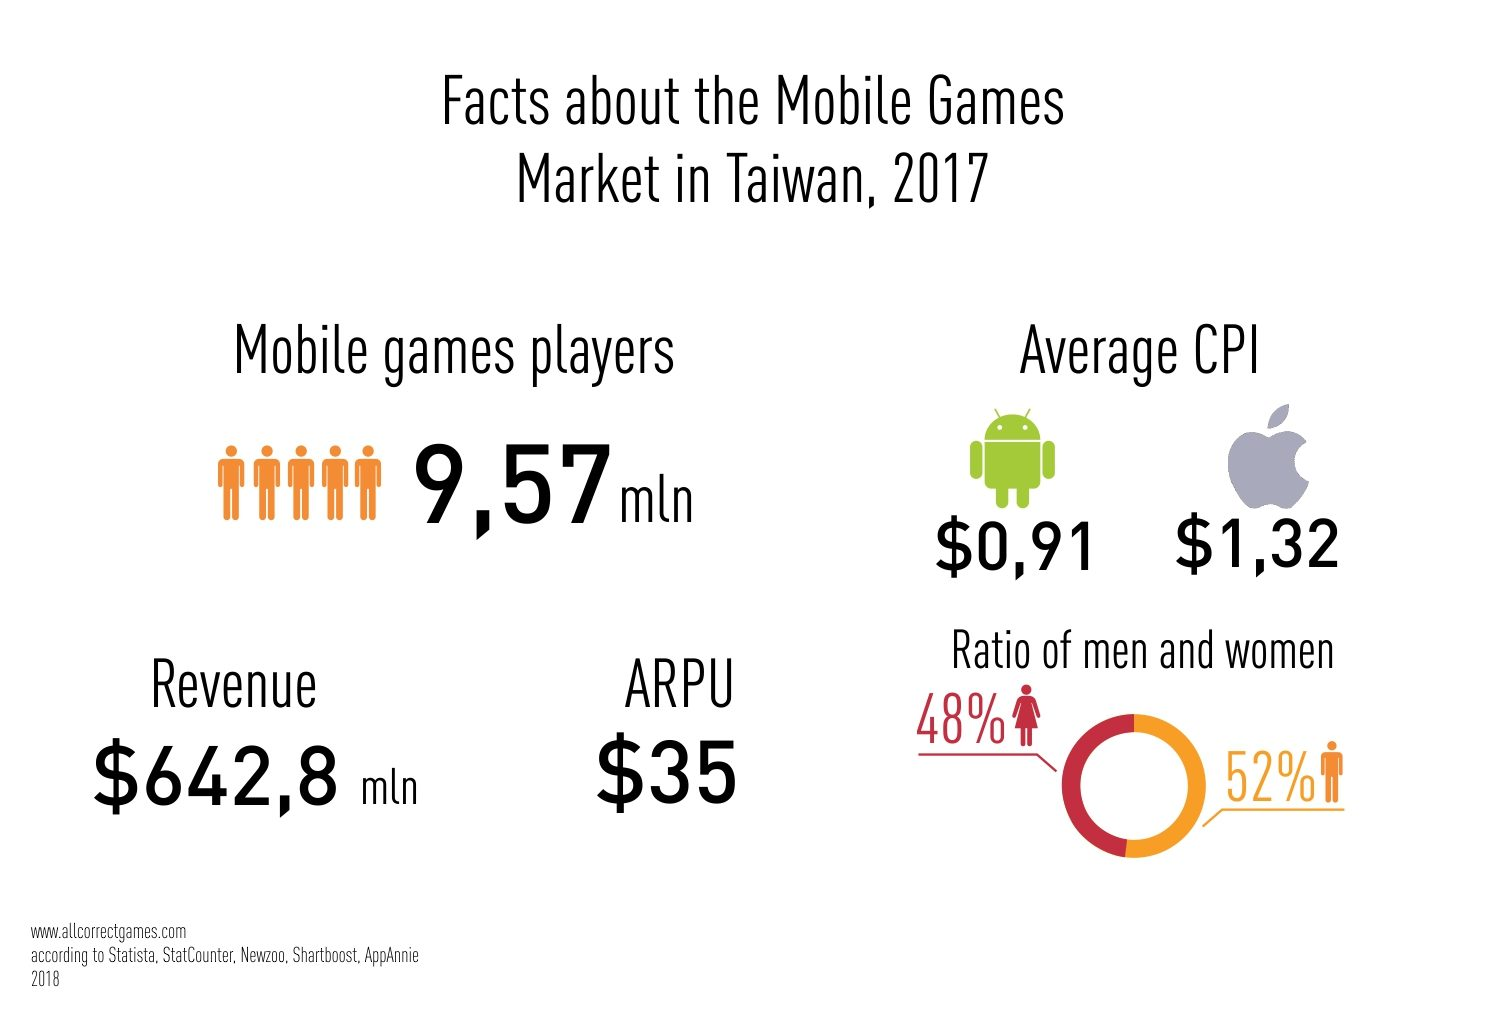 Mobile games market in Taiwan